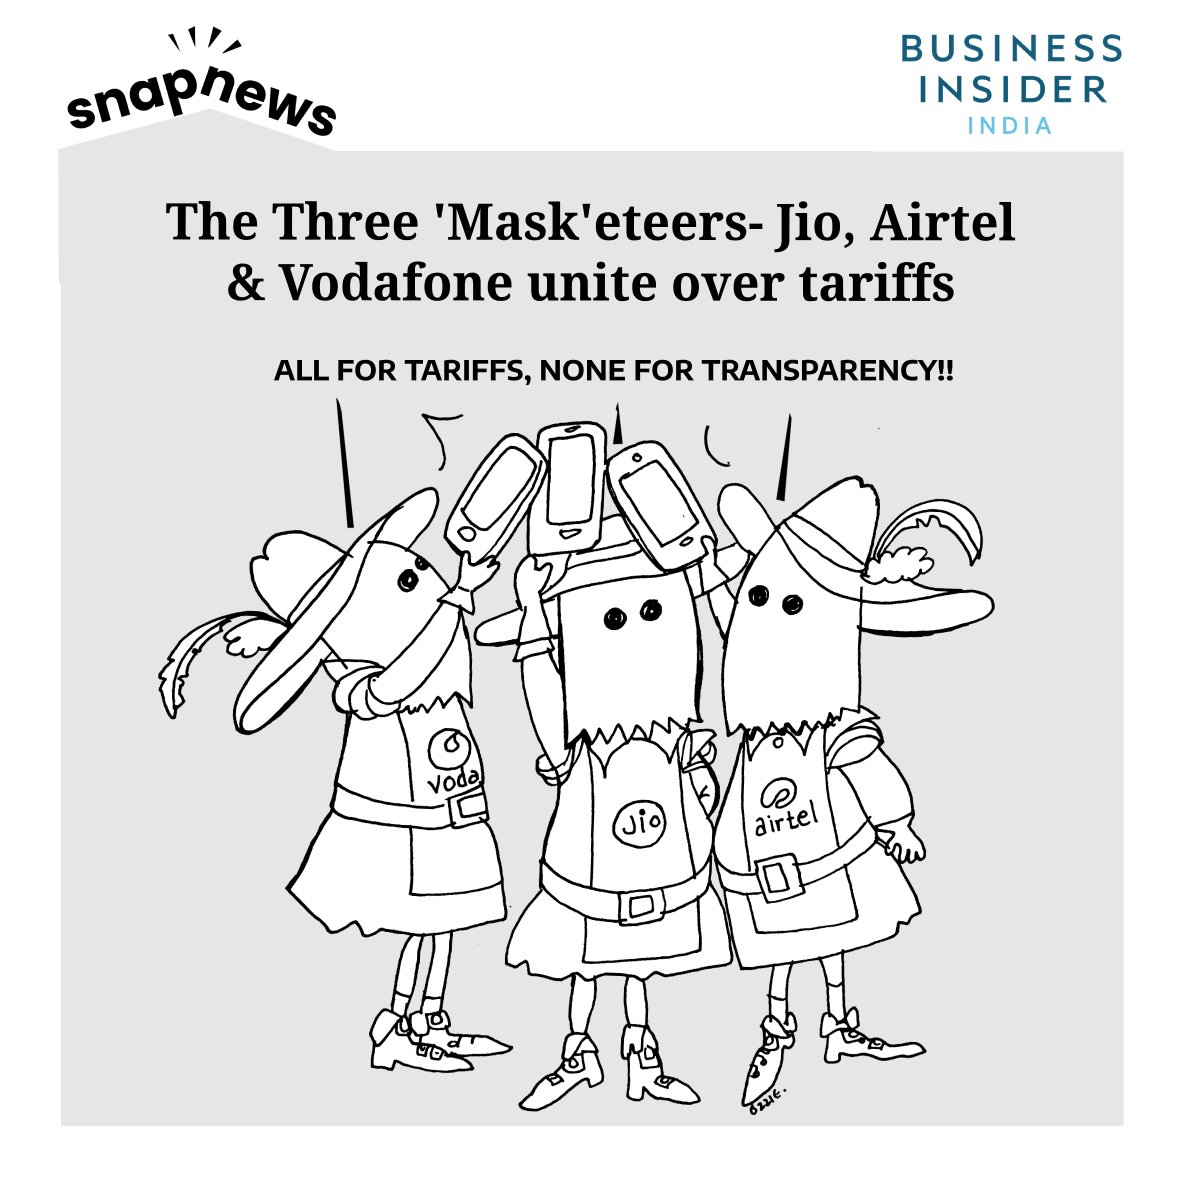 #InsiderInJest | Mukesh Ambani's Jio disagrees with Airtel, Vodafone on everything except tariffs and transparency. Read more: bit.ly/2wy7tQW